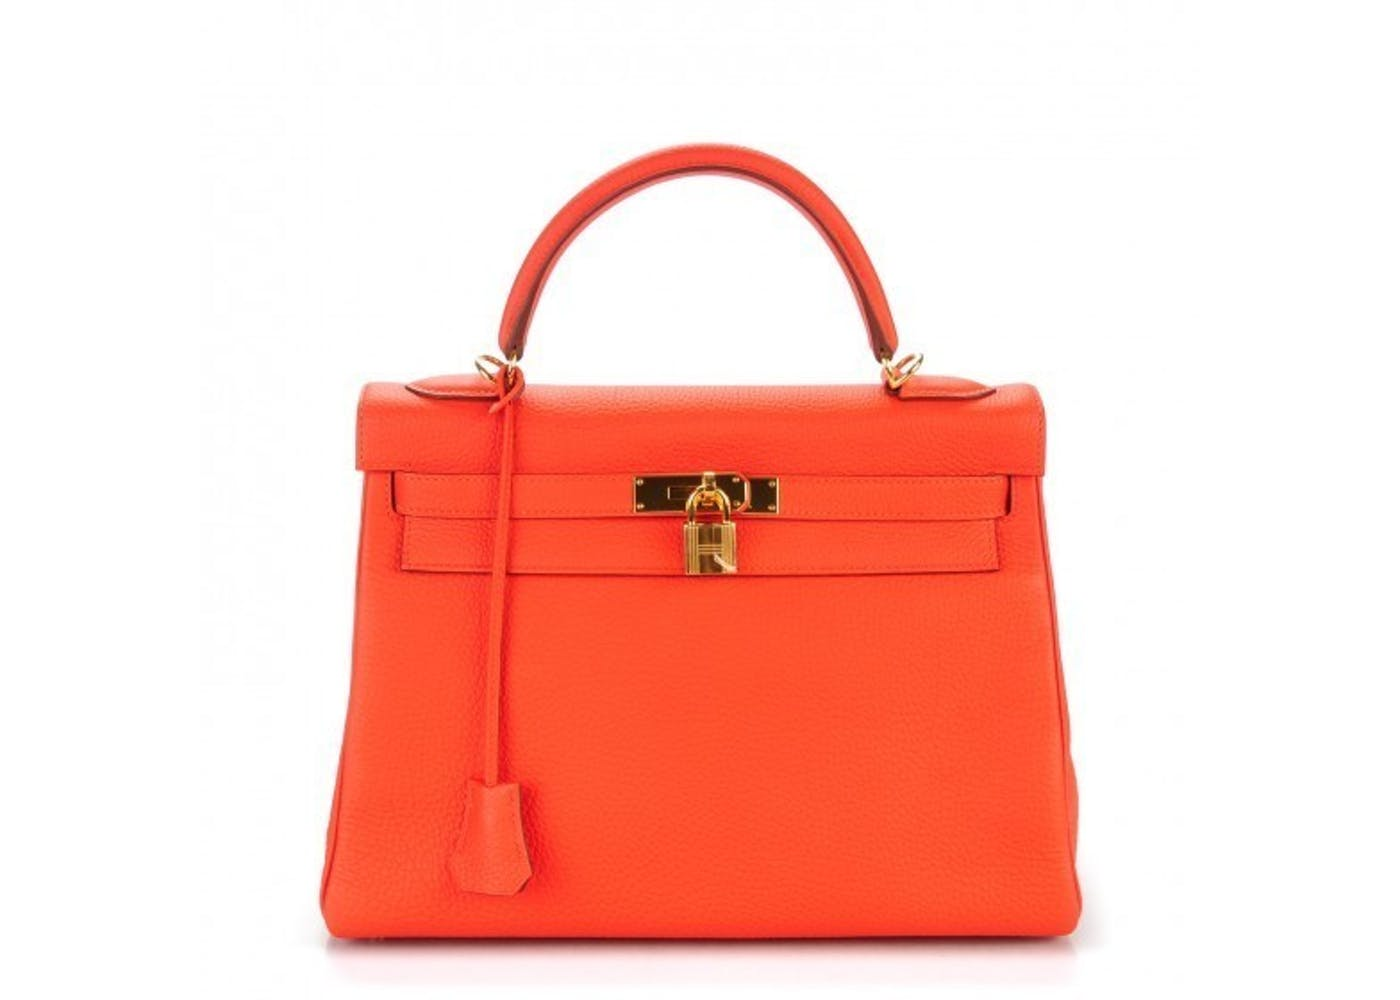 Hermes Kelly 32 Togo